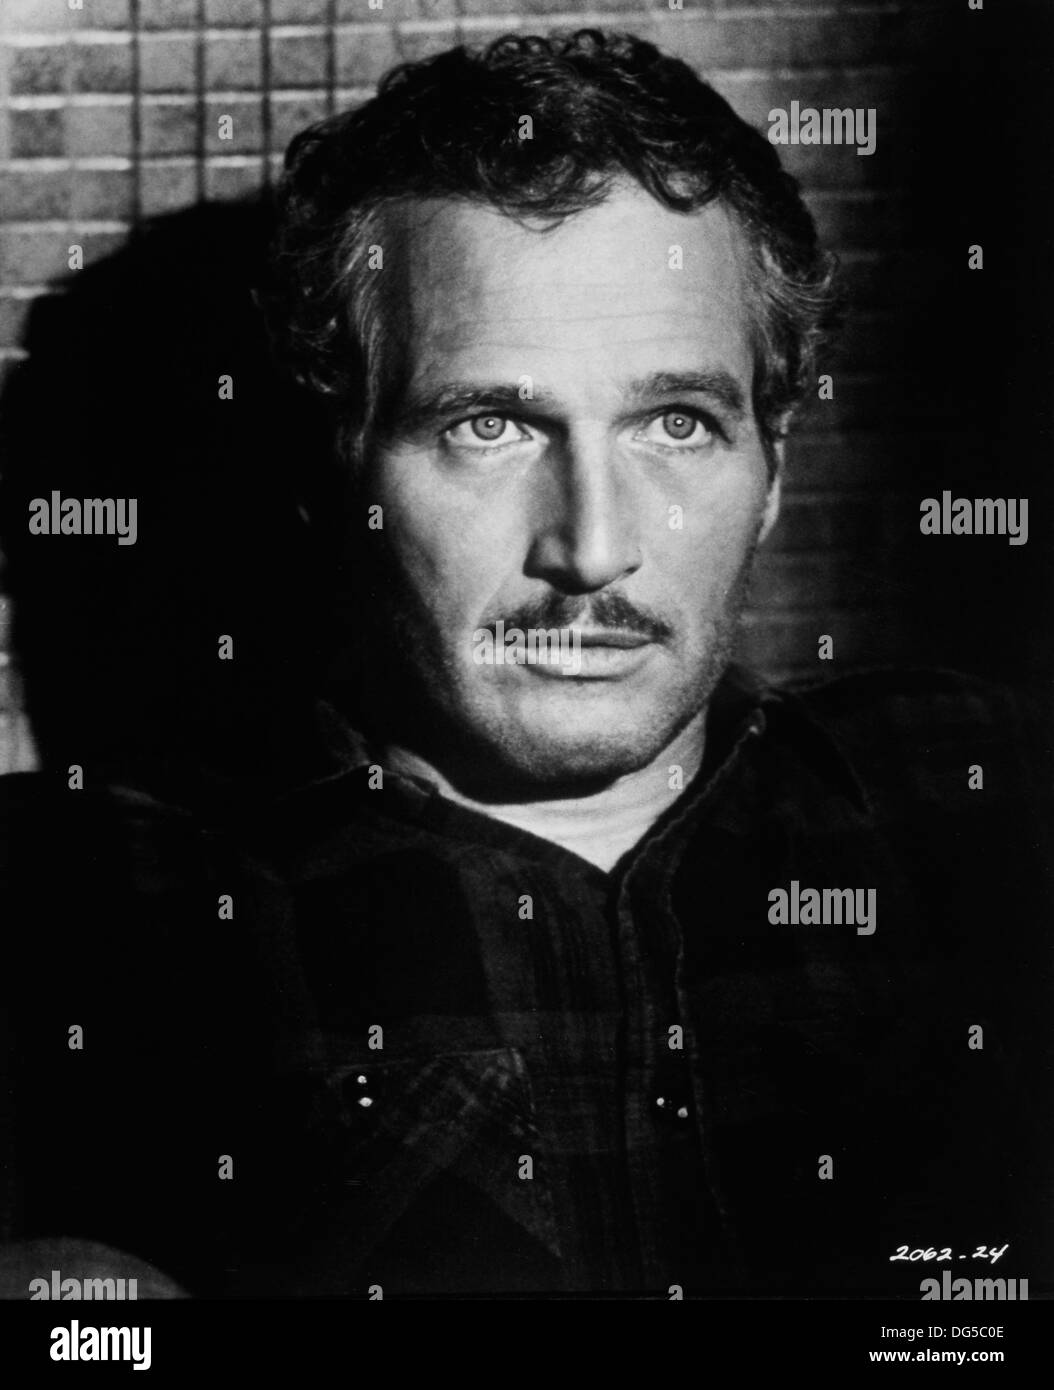 Paul Newman, On-Set of the Film, 'The Sting', Universal Pictures, 1973 - Stock Image